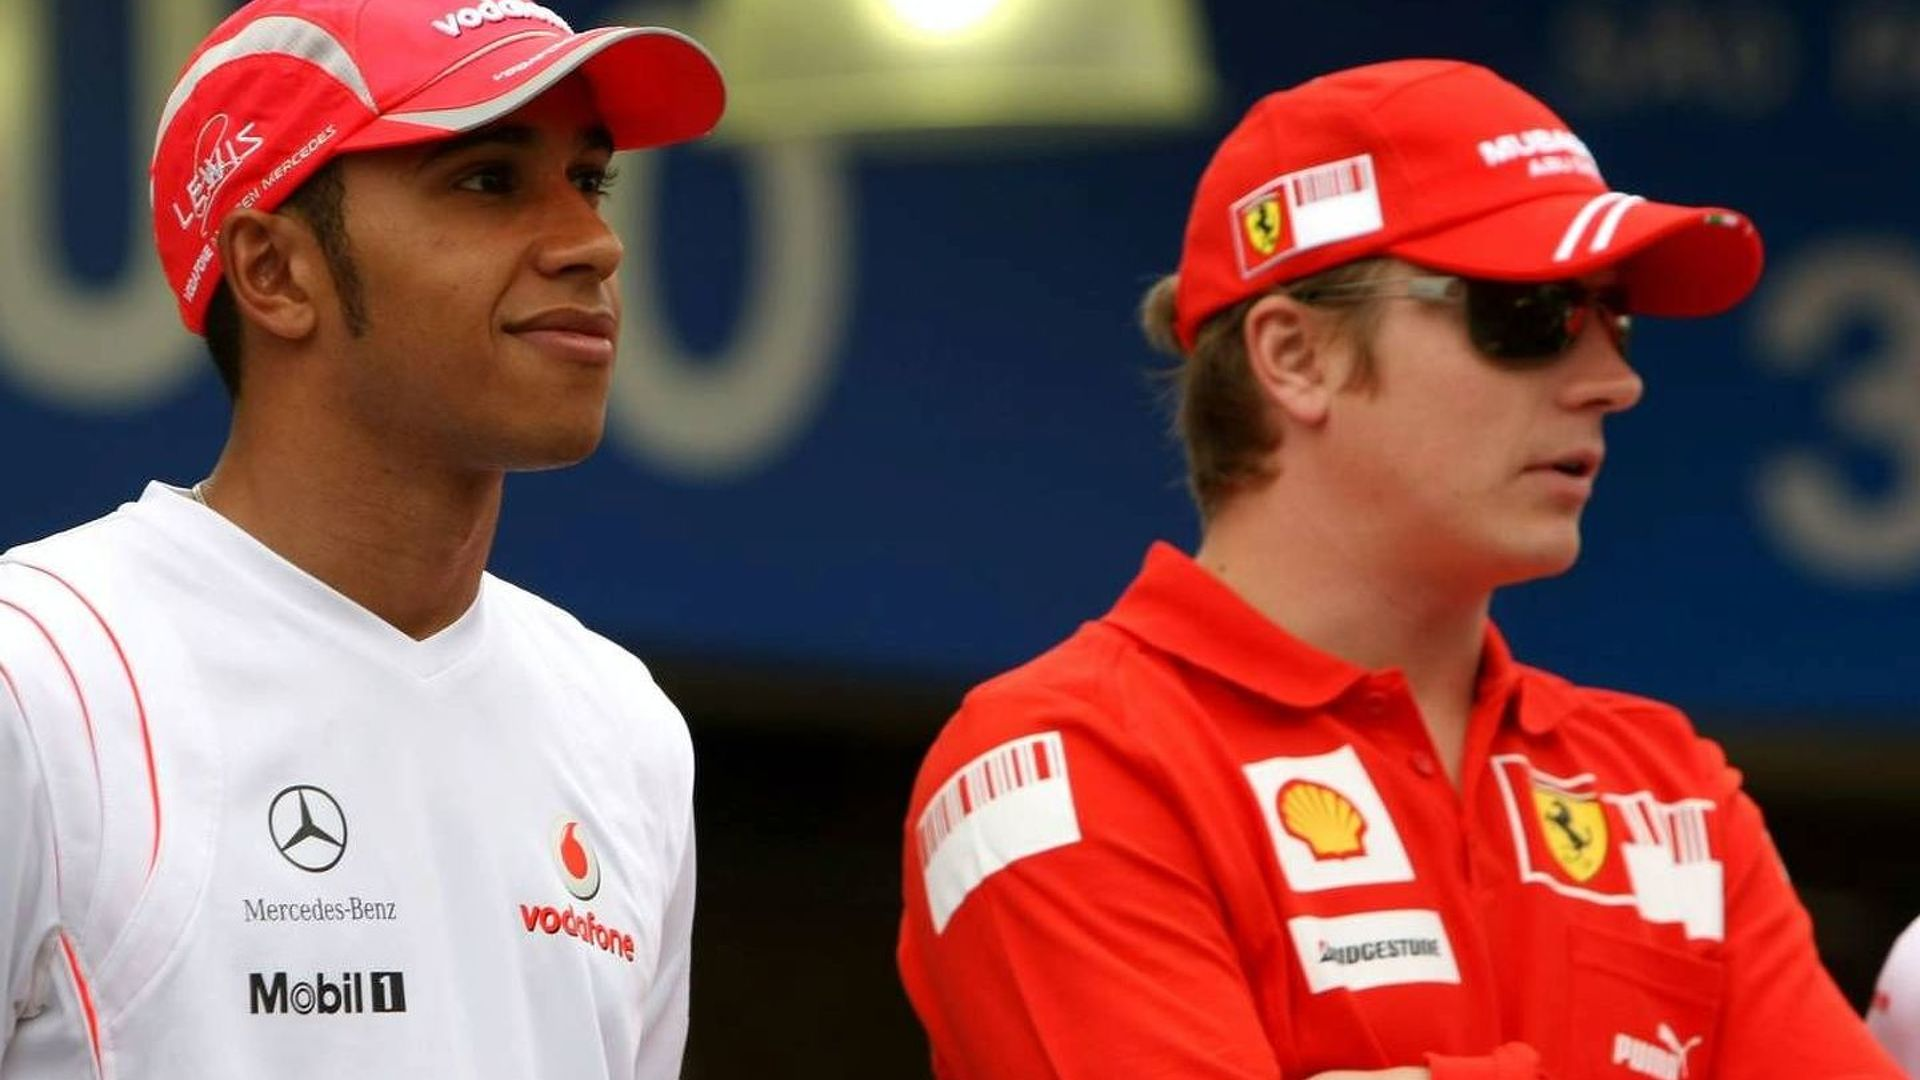 Raikkonen signs agreement with McLaren - report